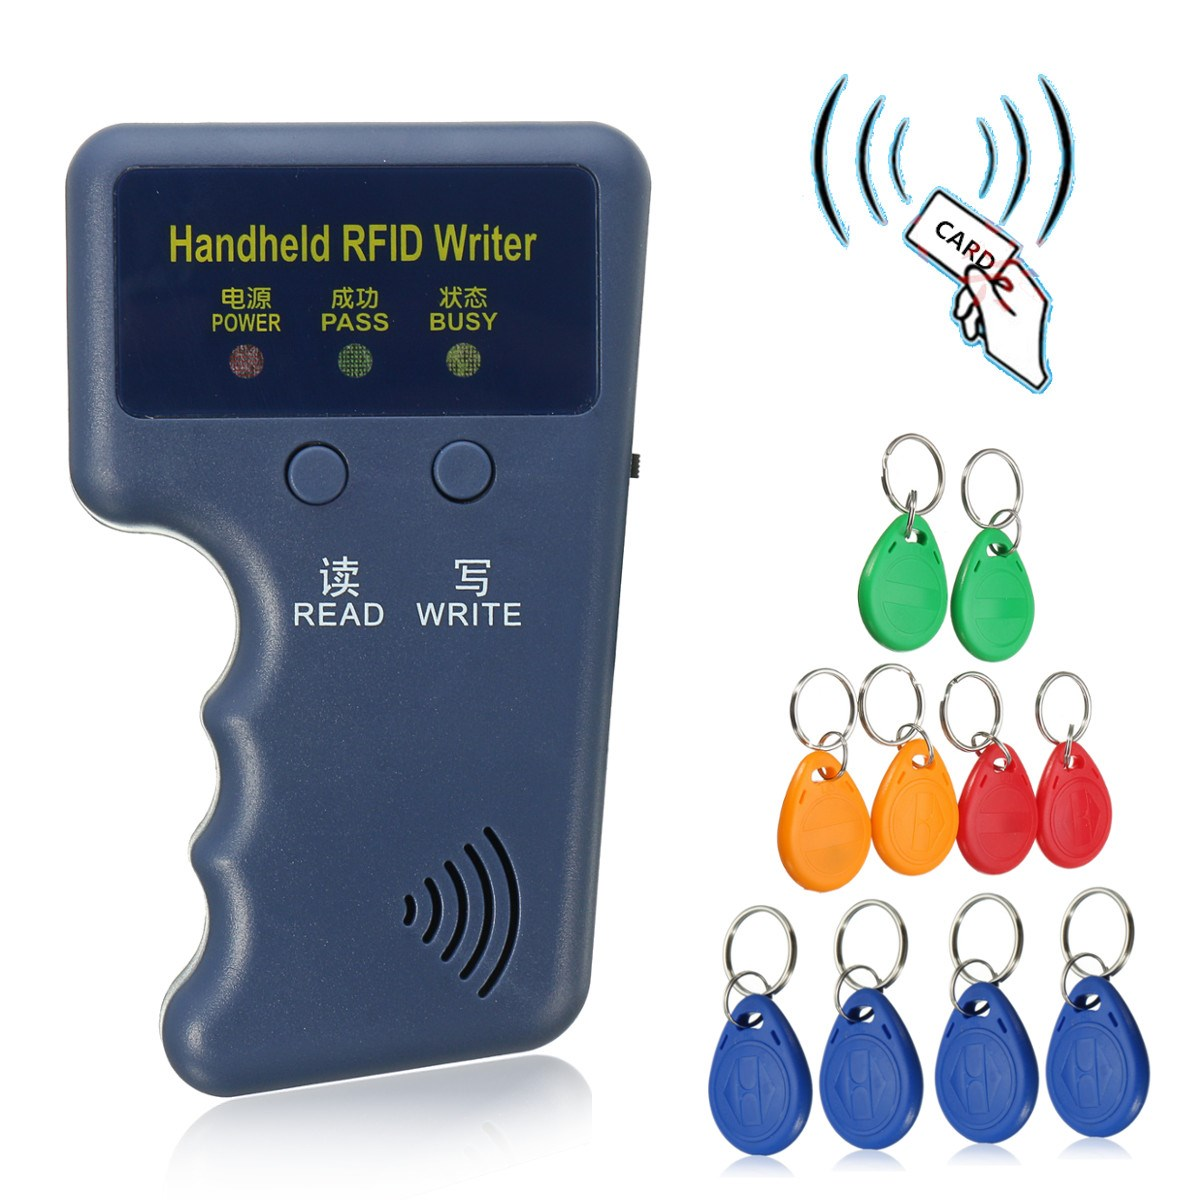 все цены на Handheld 125KHz EM4100 RFID Copier Writer Duplicator Programmer Reader + 10 Pcs EM4305 T5577 Rewritable ID Keyfobs Tags Card онлайн